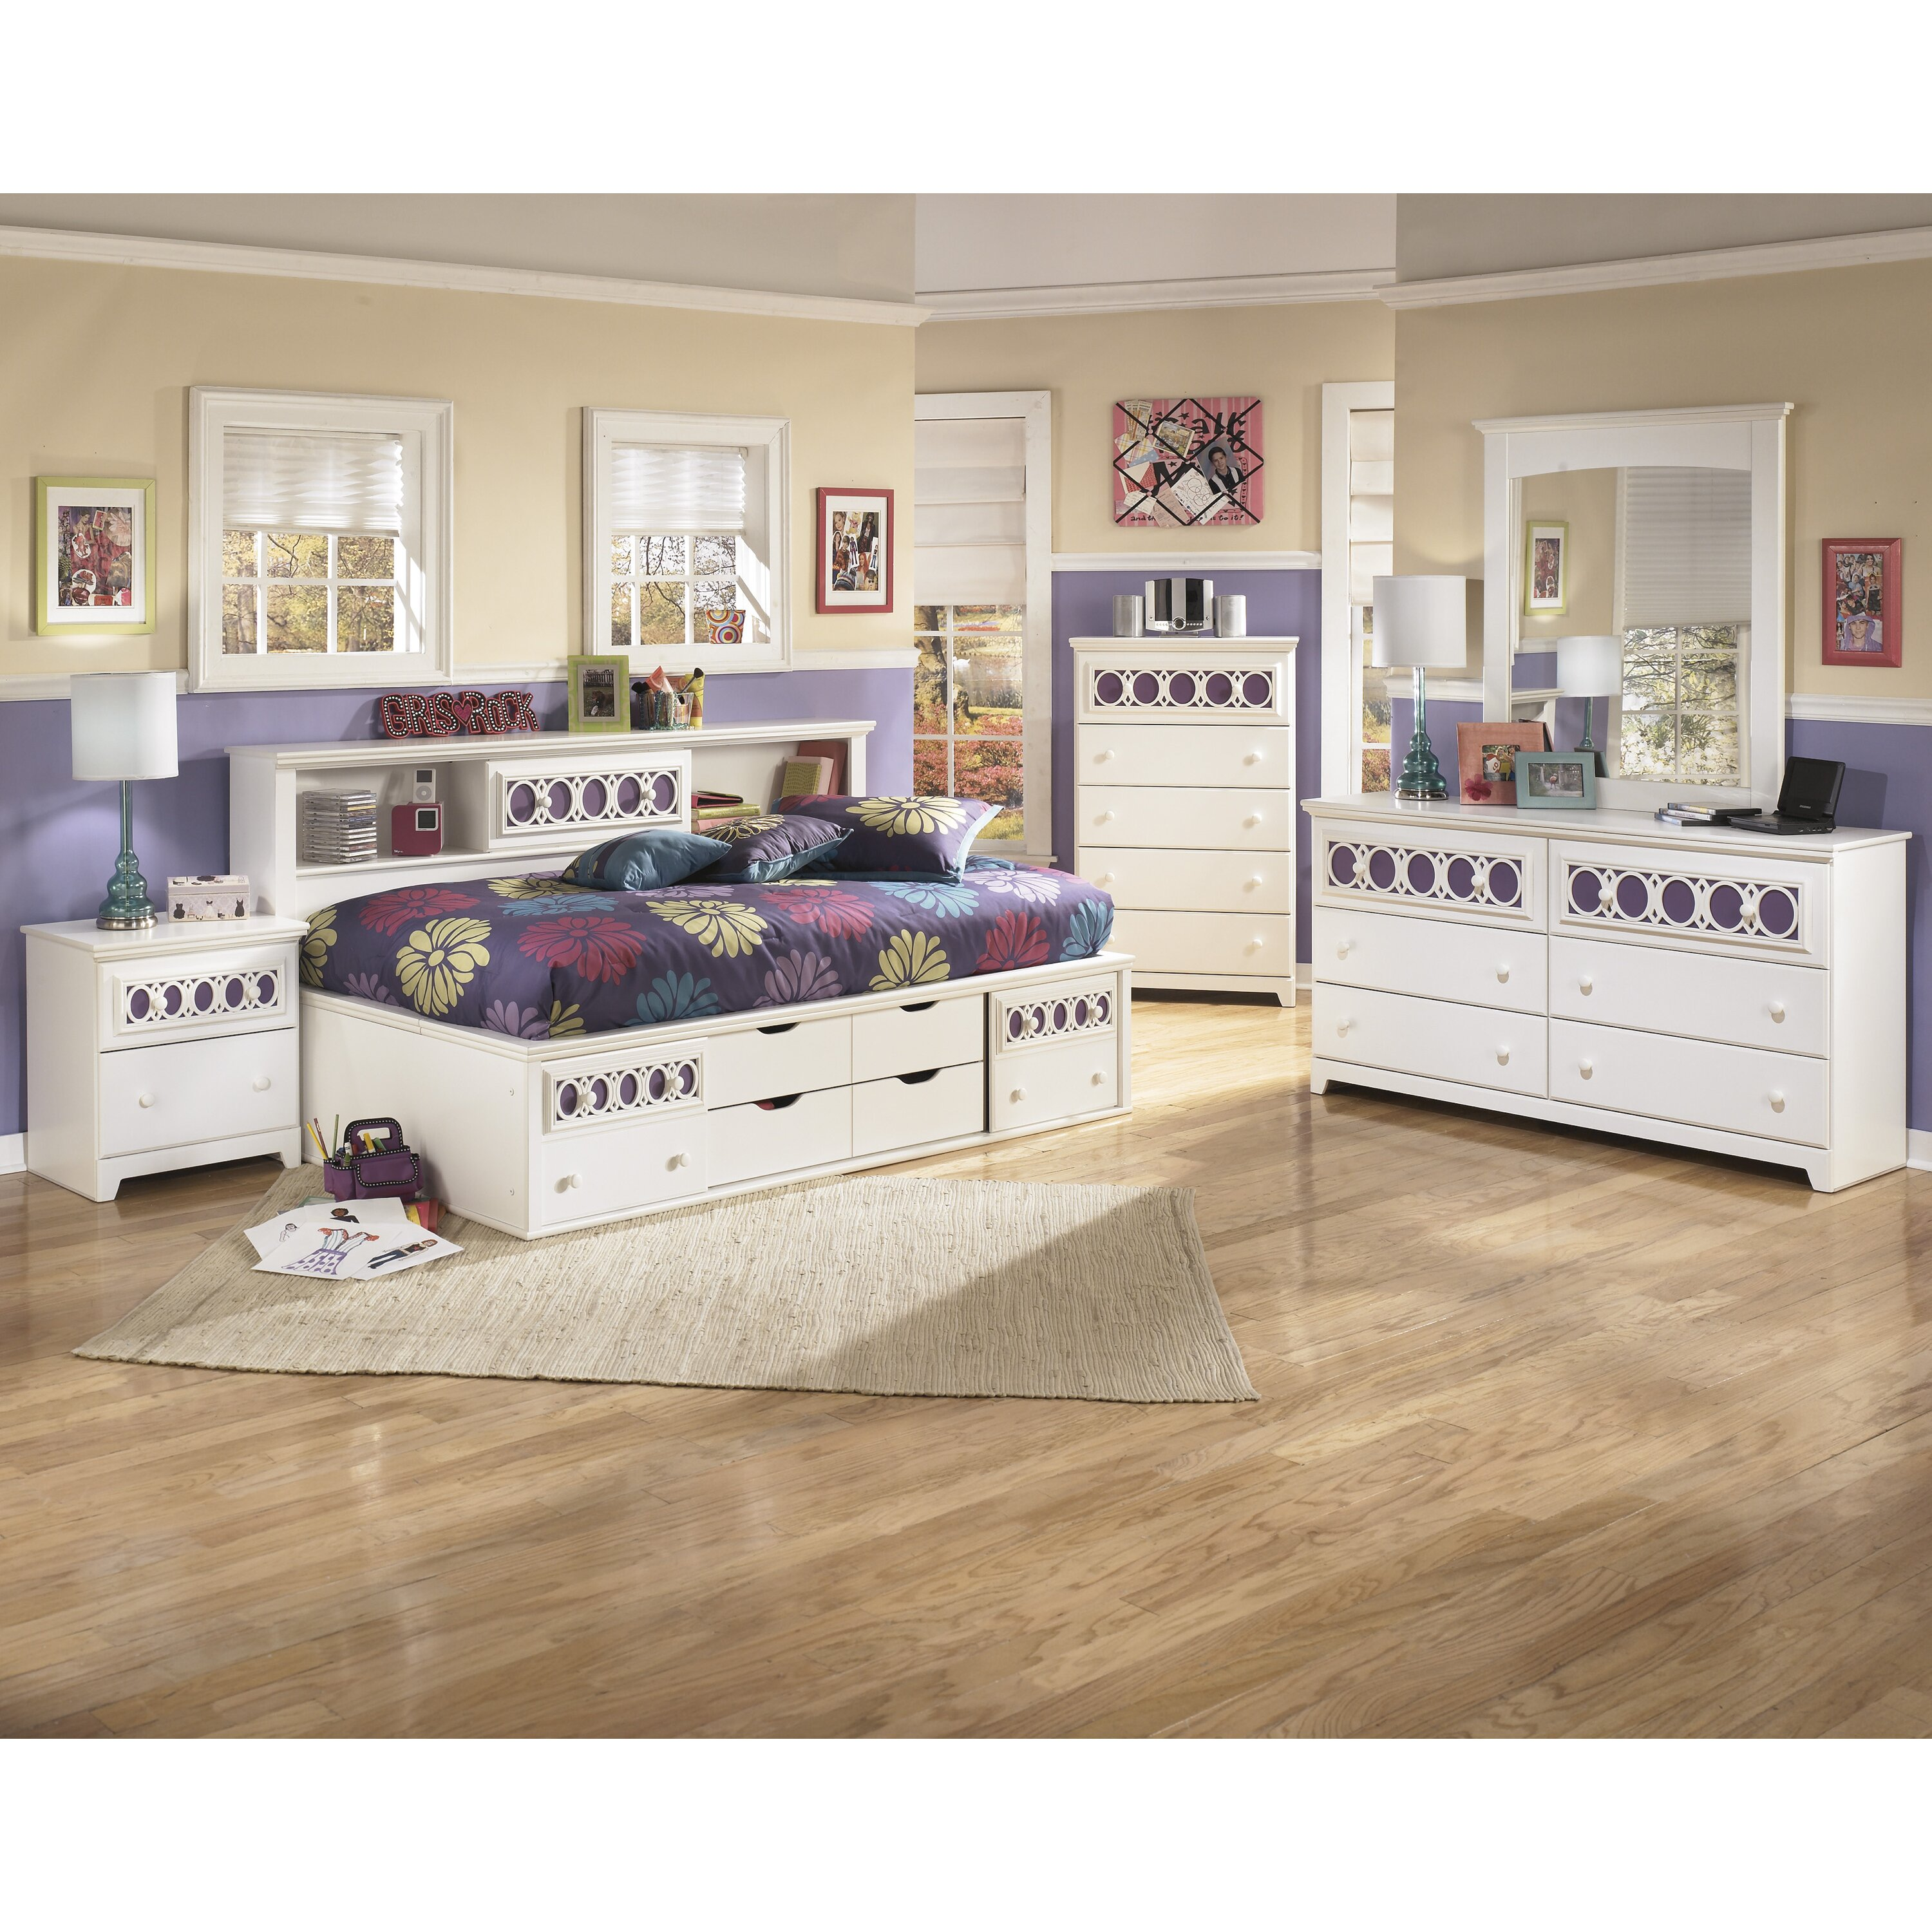 Signature design by ashley zayley panel customizable - Ashley furniture kids bedroom sets ...